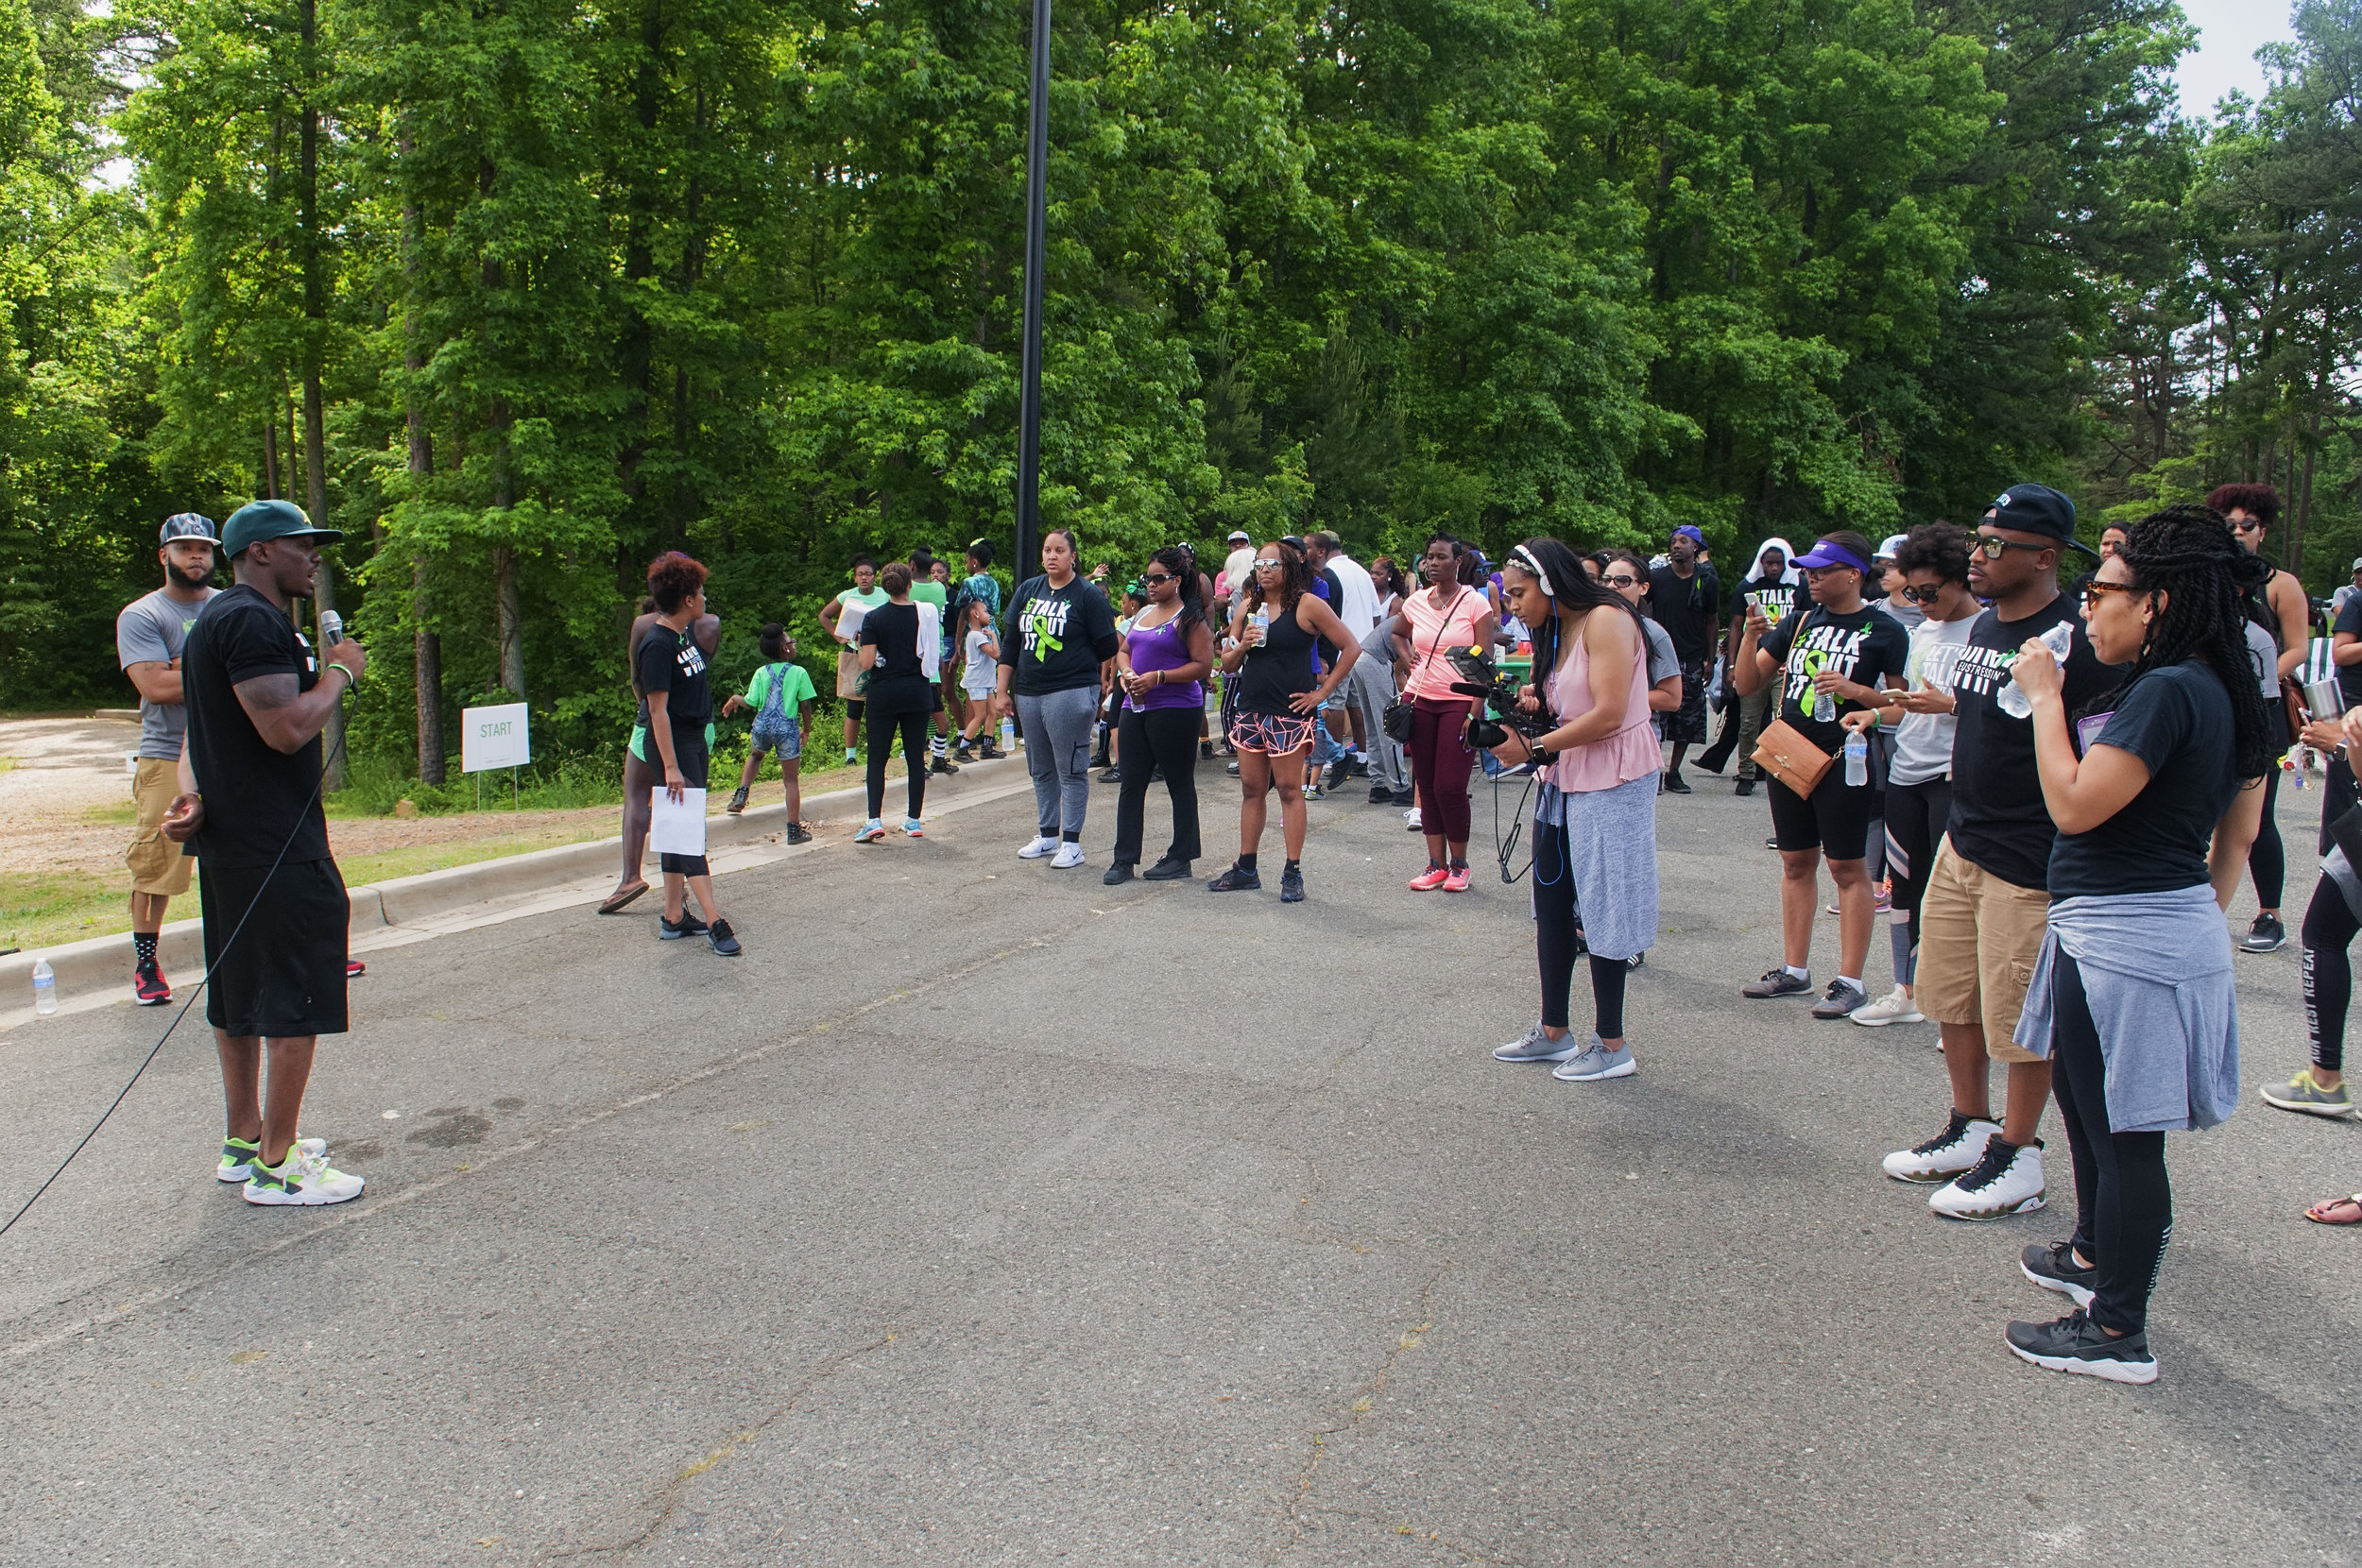 2nd Annual Let's Talk About It Mental Health Awareness Walk @ Park Rd Park 5-20-17 by Jon Strayhorn 145.jpg